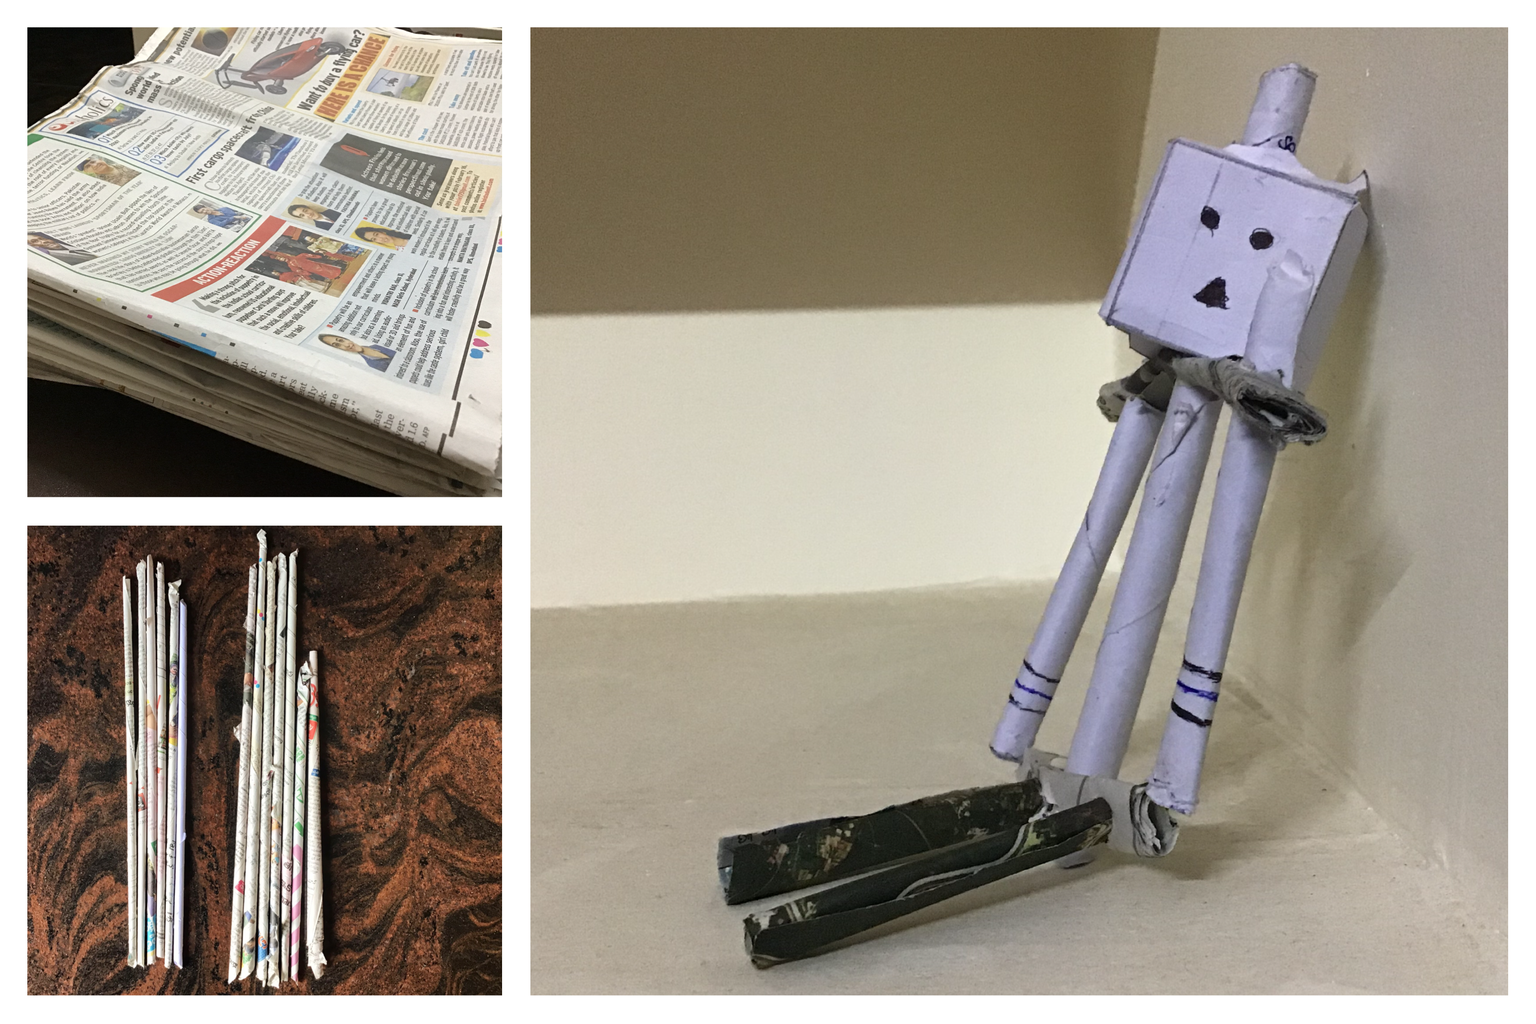 Old Newspapers to a Piperoid Robot!